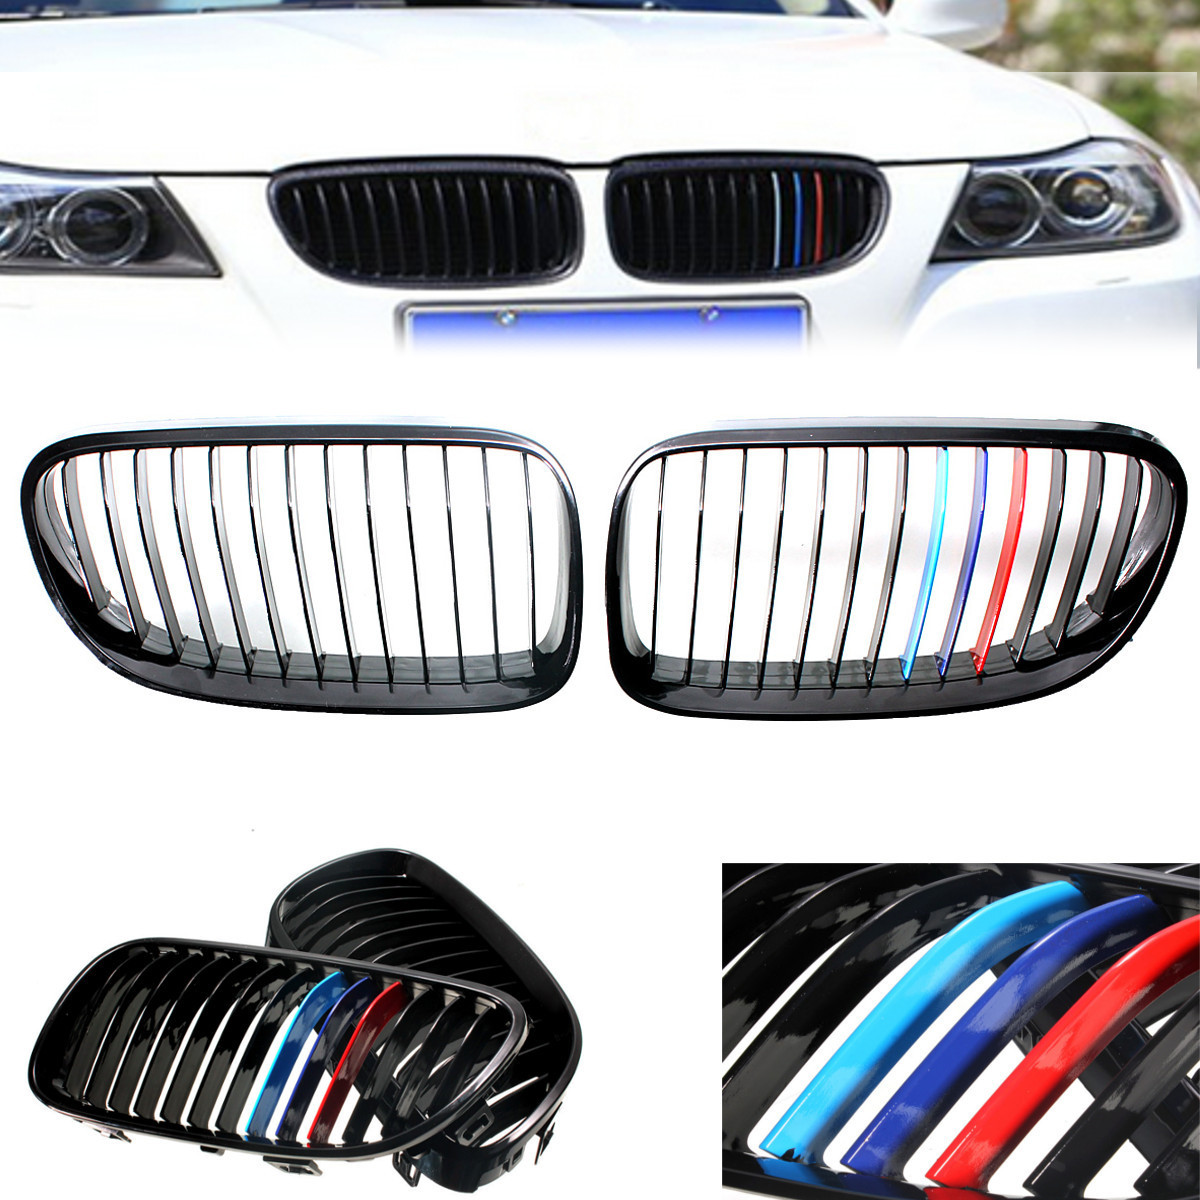 2pcs M Styling Car Front Hood Glossy Black Kidney Grill Front Grille for BMW E92 E93 2DR 2 Door Coupe car bight glossy black double slat front grille grill for bmw e92 lci facelift e93 2011 2012 2013 c 5